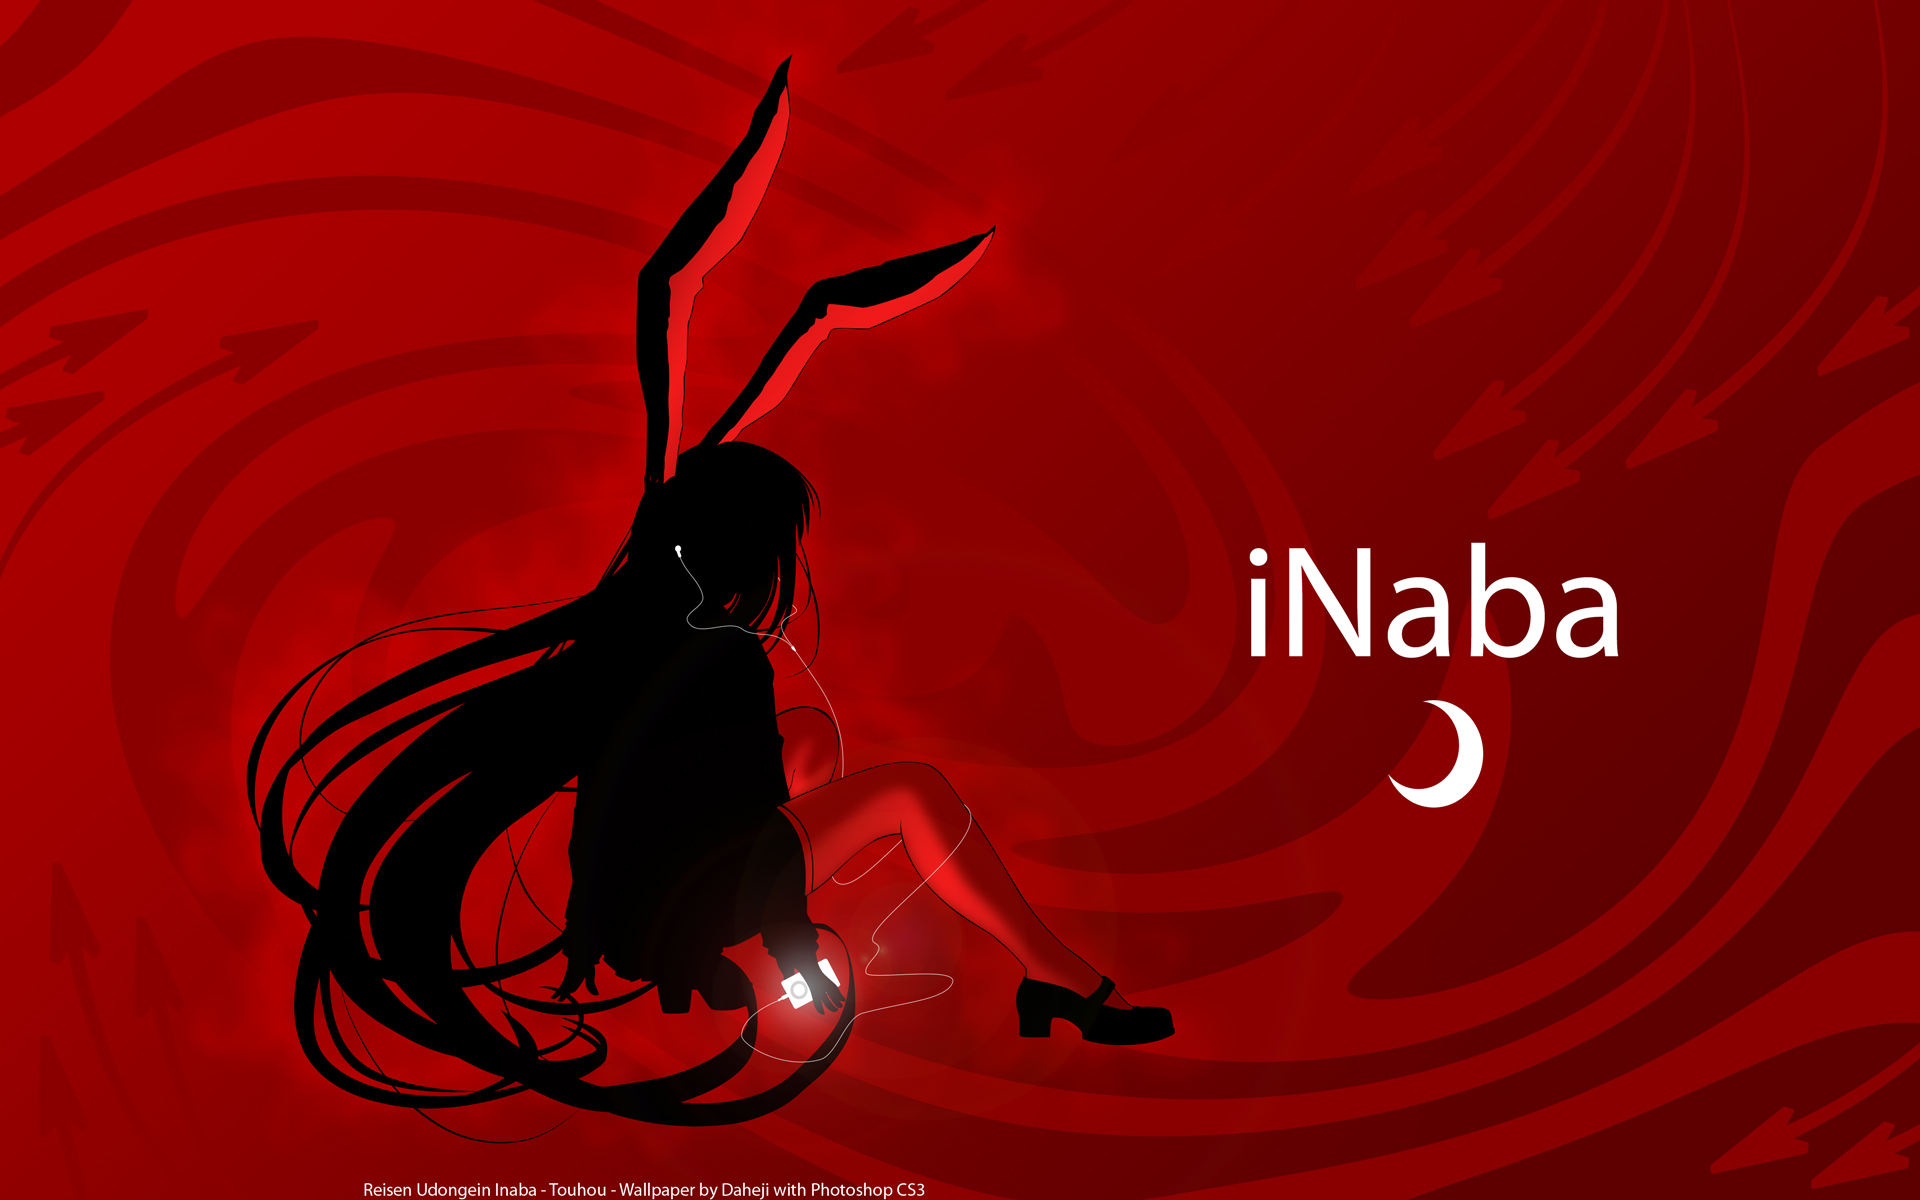 Reisen udongein inaba smiling open mouth bunny wallpaper